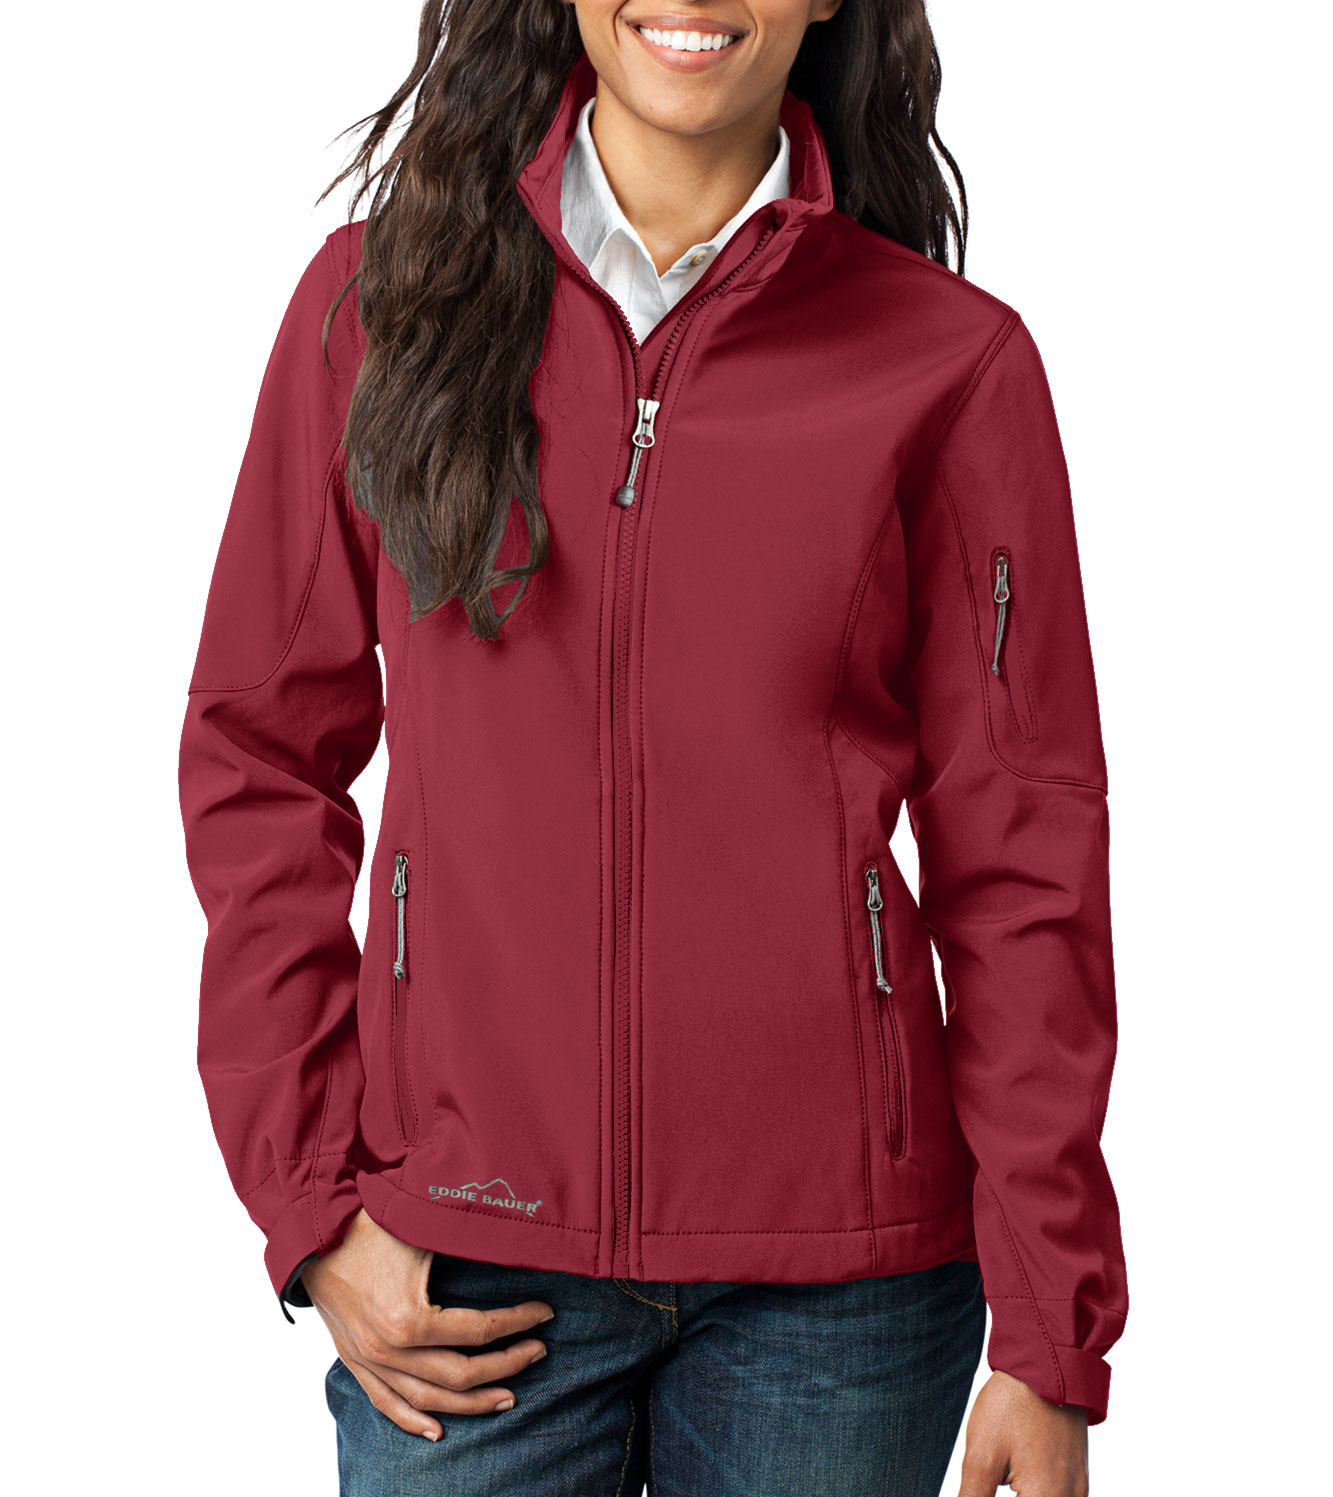 Eddie Bauer� Ladies Soft Shell Jacket